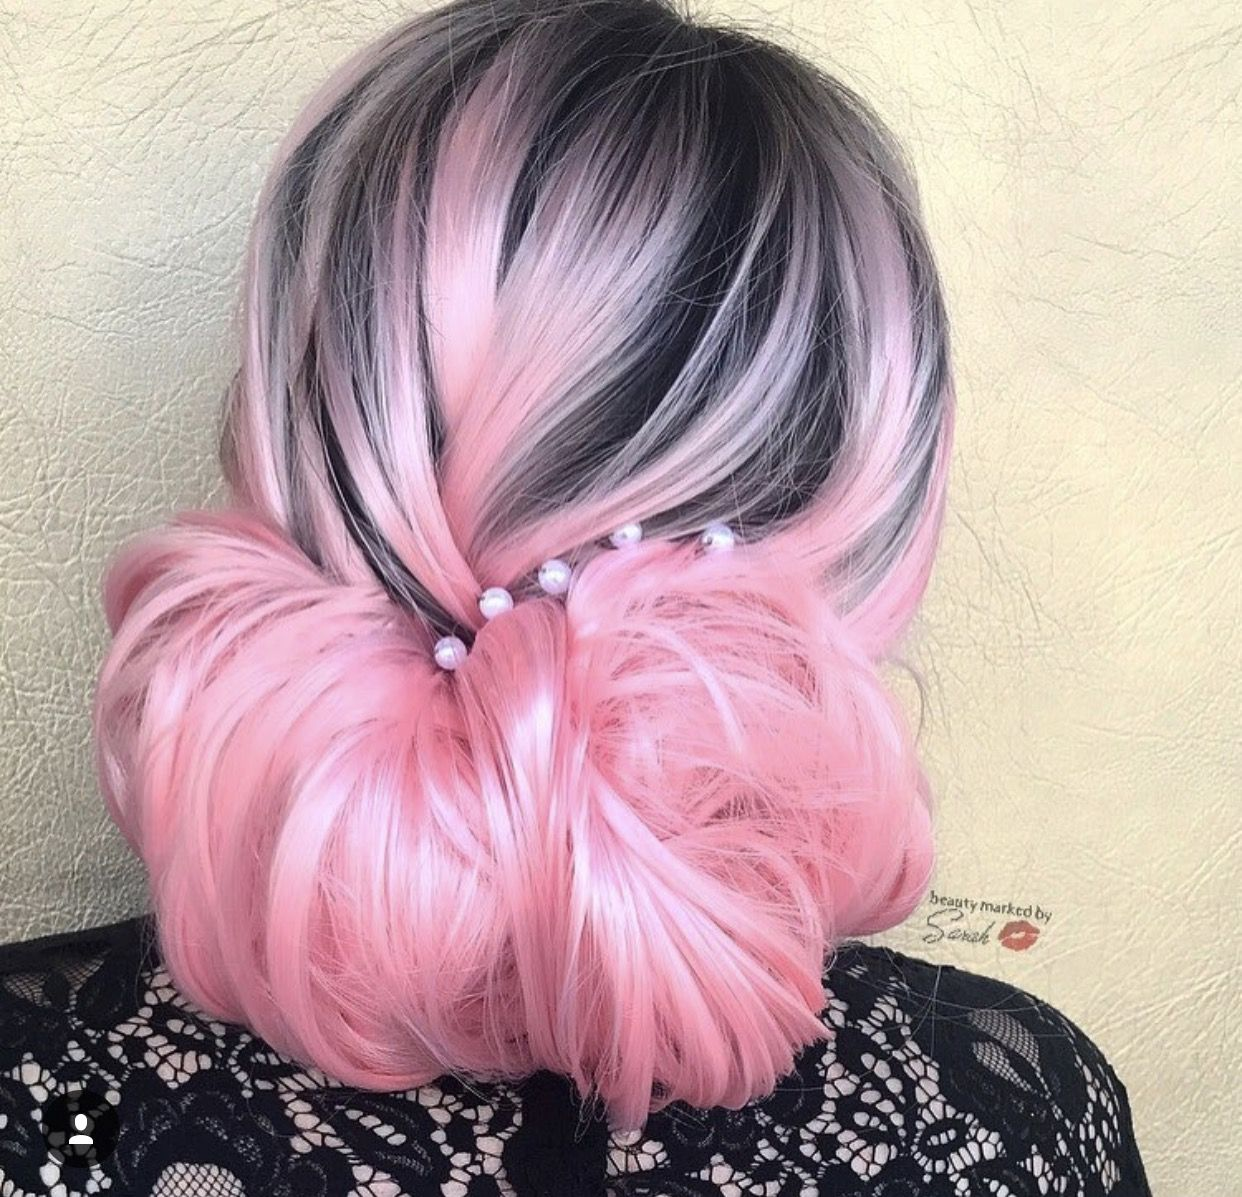 pink and black hair in a bun | pink hair inspo | pinterest | black